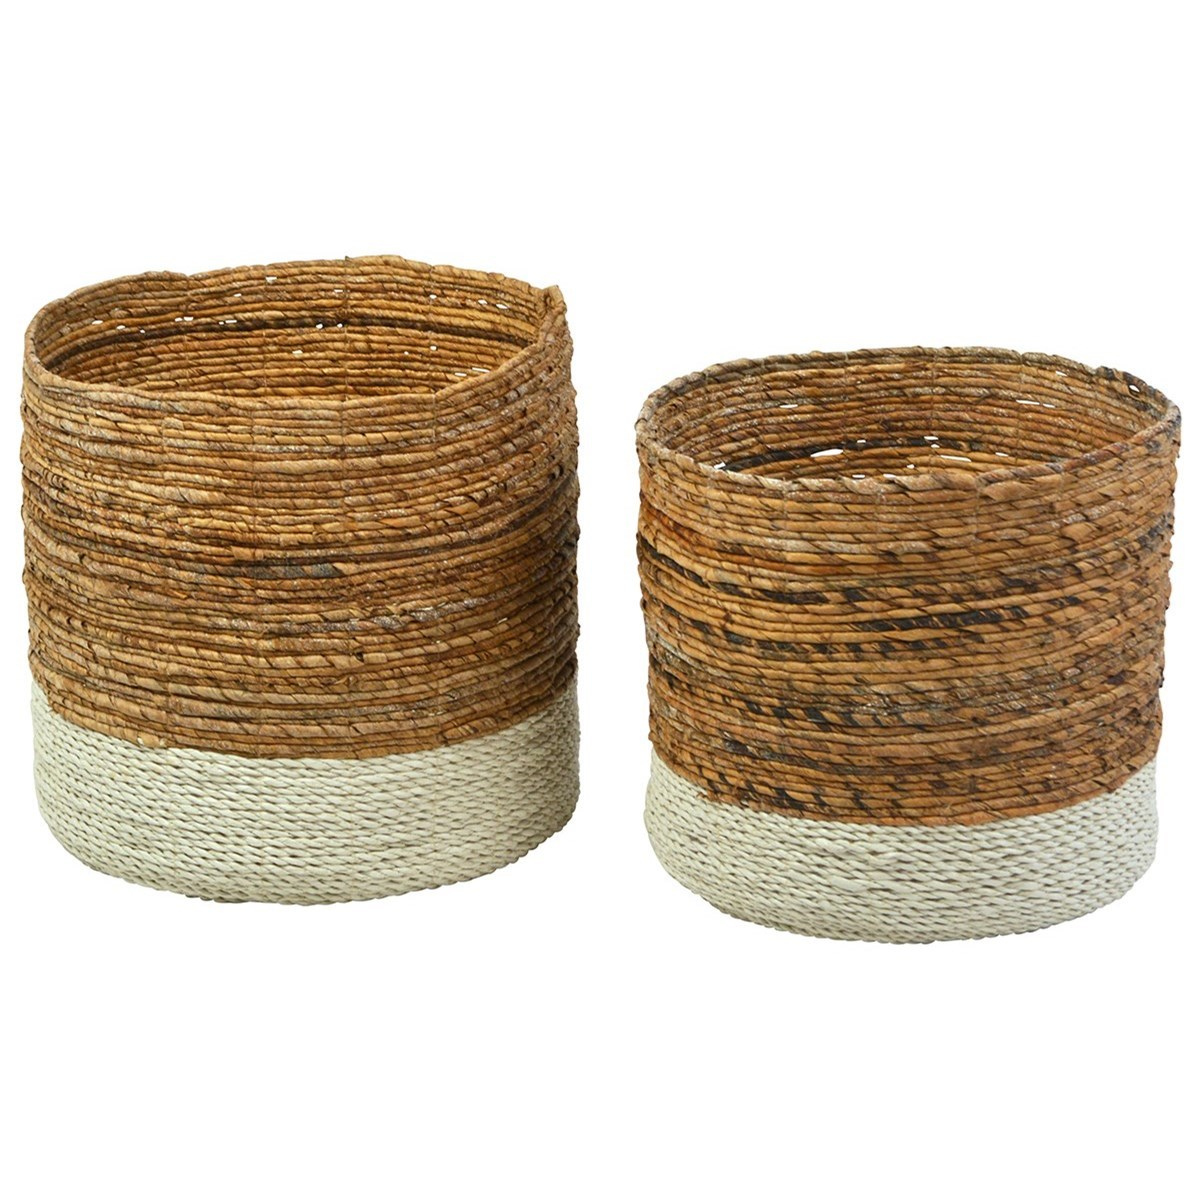 Accessories Basket Set of 2 by Kaitlyn's Kreations at Sprintz Furniture